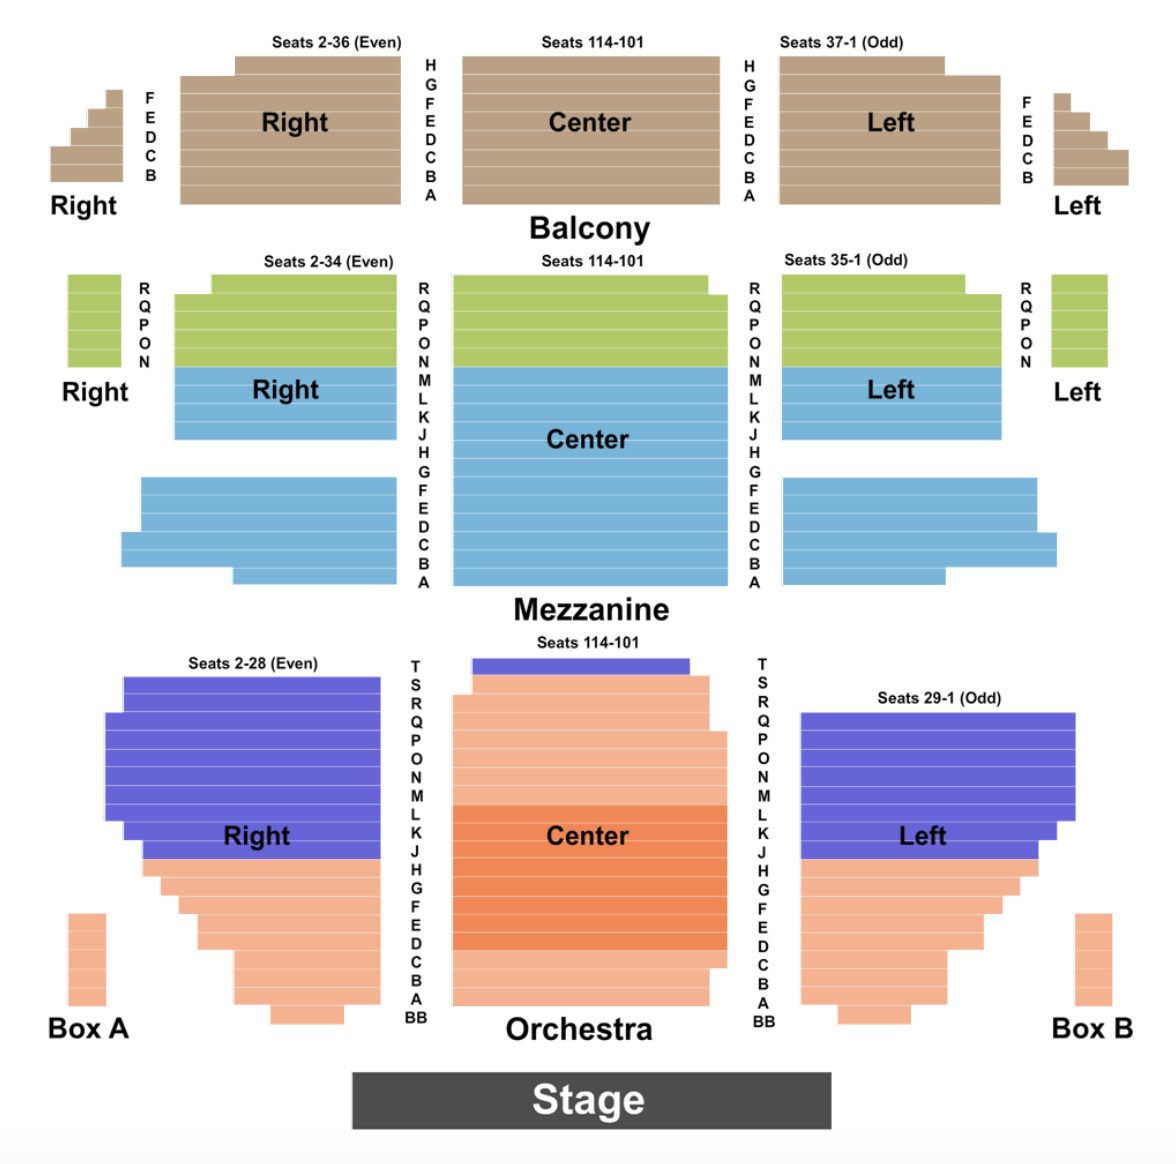 St. James Theatre Seating Chart + Section, Row & Seat Number ... on great scott allston seating-chart, oakdale theatre wallingford ct seating-chart, masonic temple seating-chart, queen elizabeth theatre vancouver seating-chart, shubert theatre boston seating-chart, orpheum theater nyc seating-chart, palace theater columbus seating-chart, allen theater seattle seating-chart, broome county forum seating-chart, brown theatre louisville seating-chart, crest theatre sacramento seating-chart, state theater portland seating-chart, masonic theater san francisco seating-chart, palace theatre ny seating-chart, state fair main stage seating chart, first avenue minneapolis seating-chart, colosseum seating-chart, roseland theater portland seating-chart, rose state seating-chart, stephens auditorium ames seating-chart,